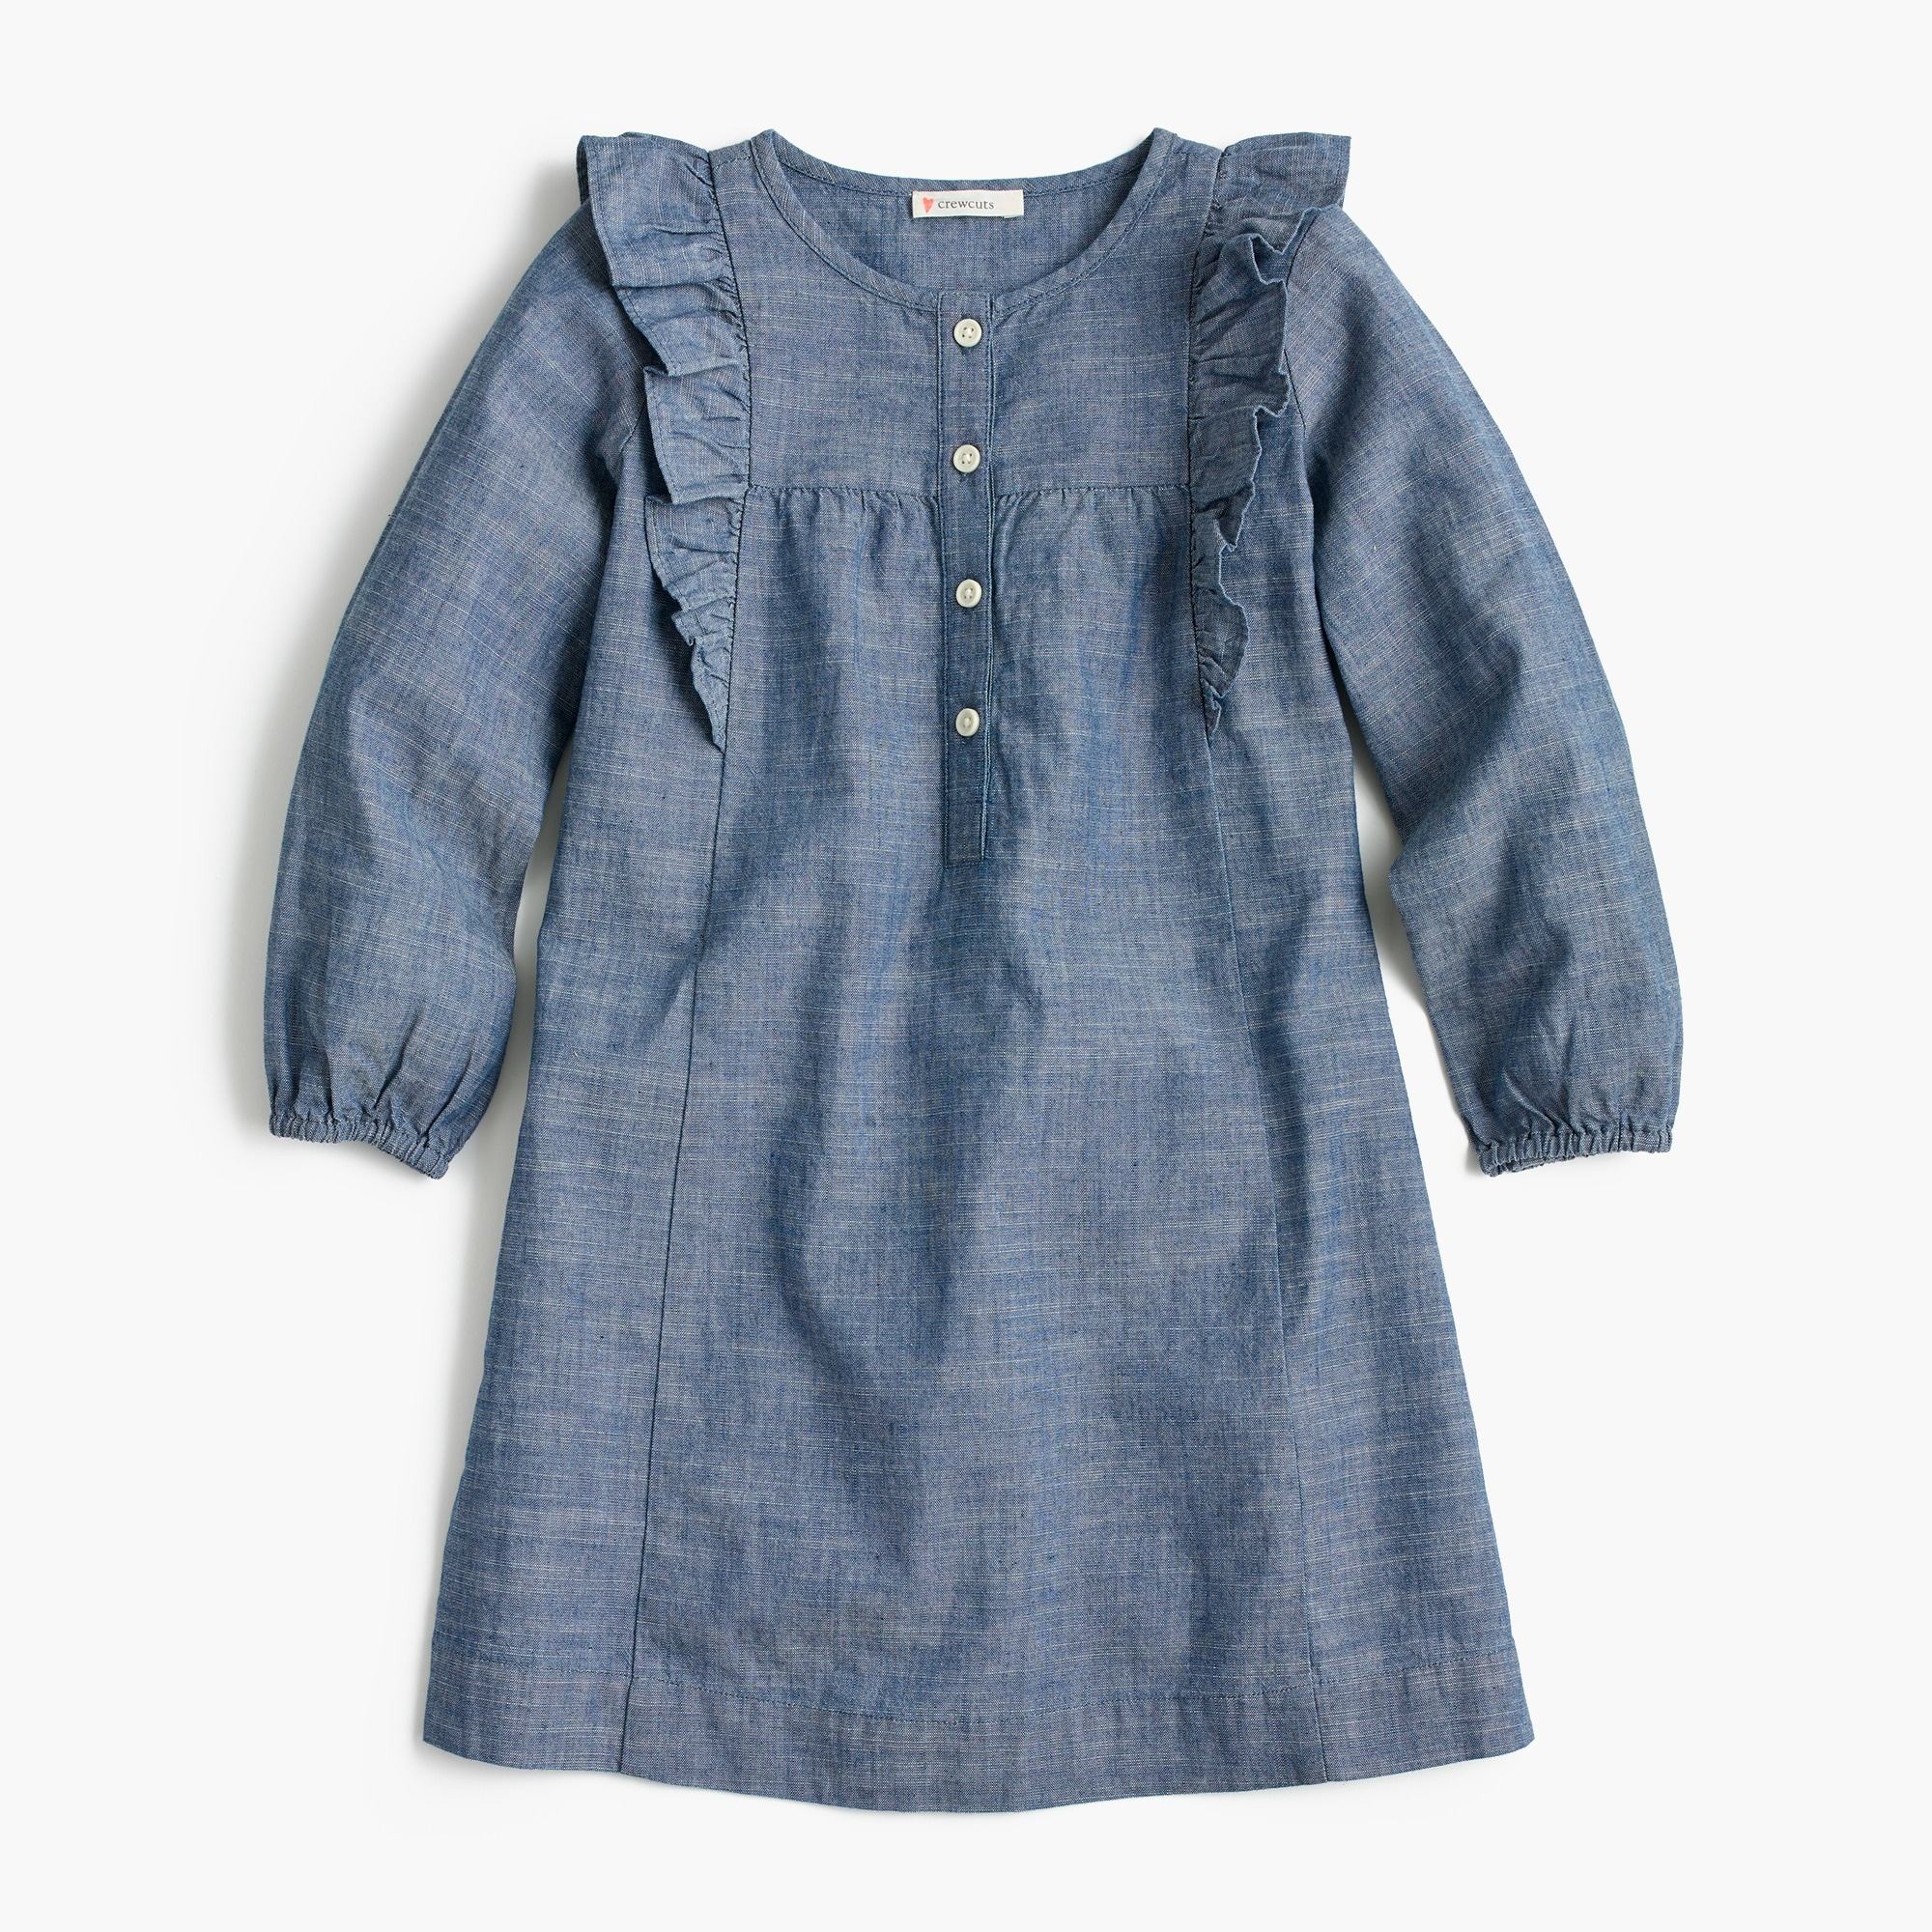 Girls' chambray dress girl dresses c